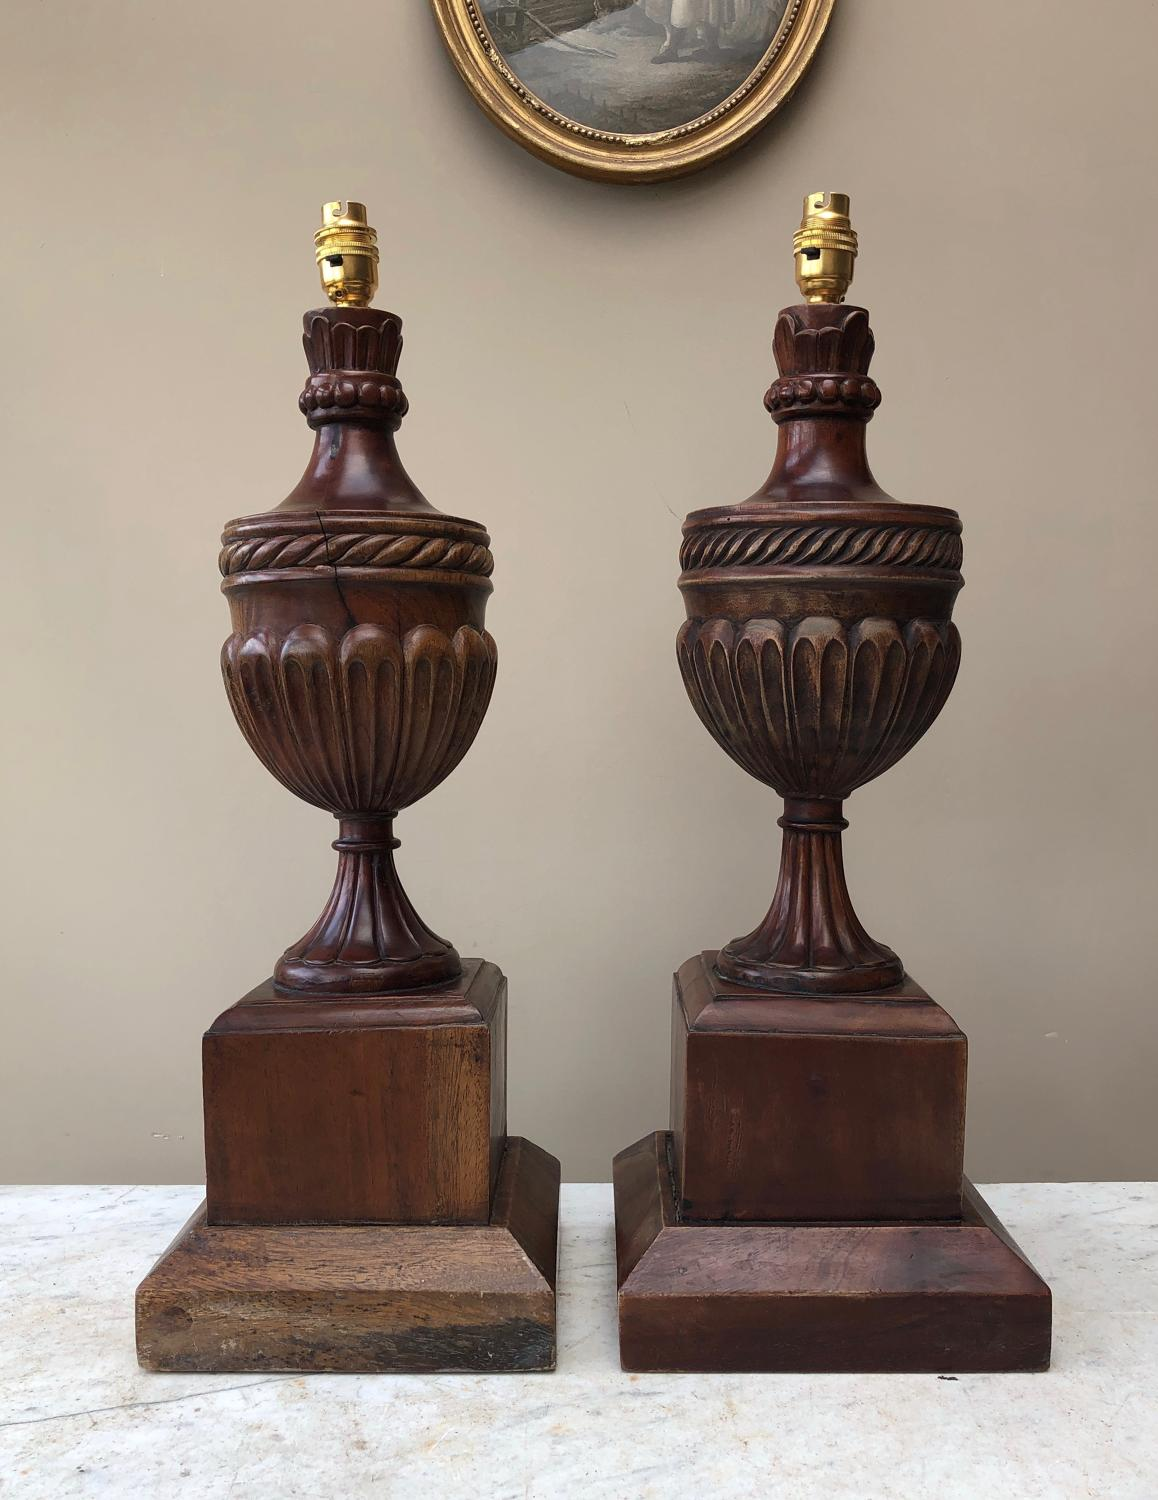 Large Pair of Antique Mahogany Lamp Bases - Urns on Pedestal Bases